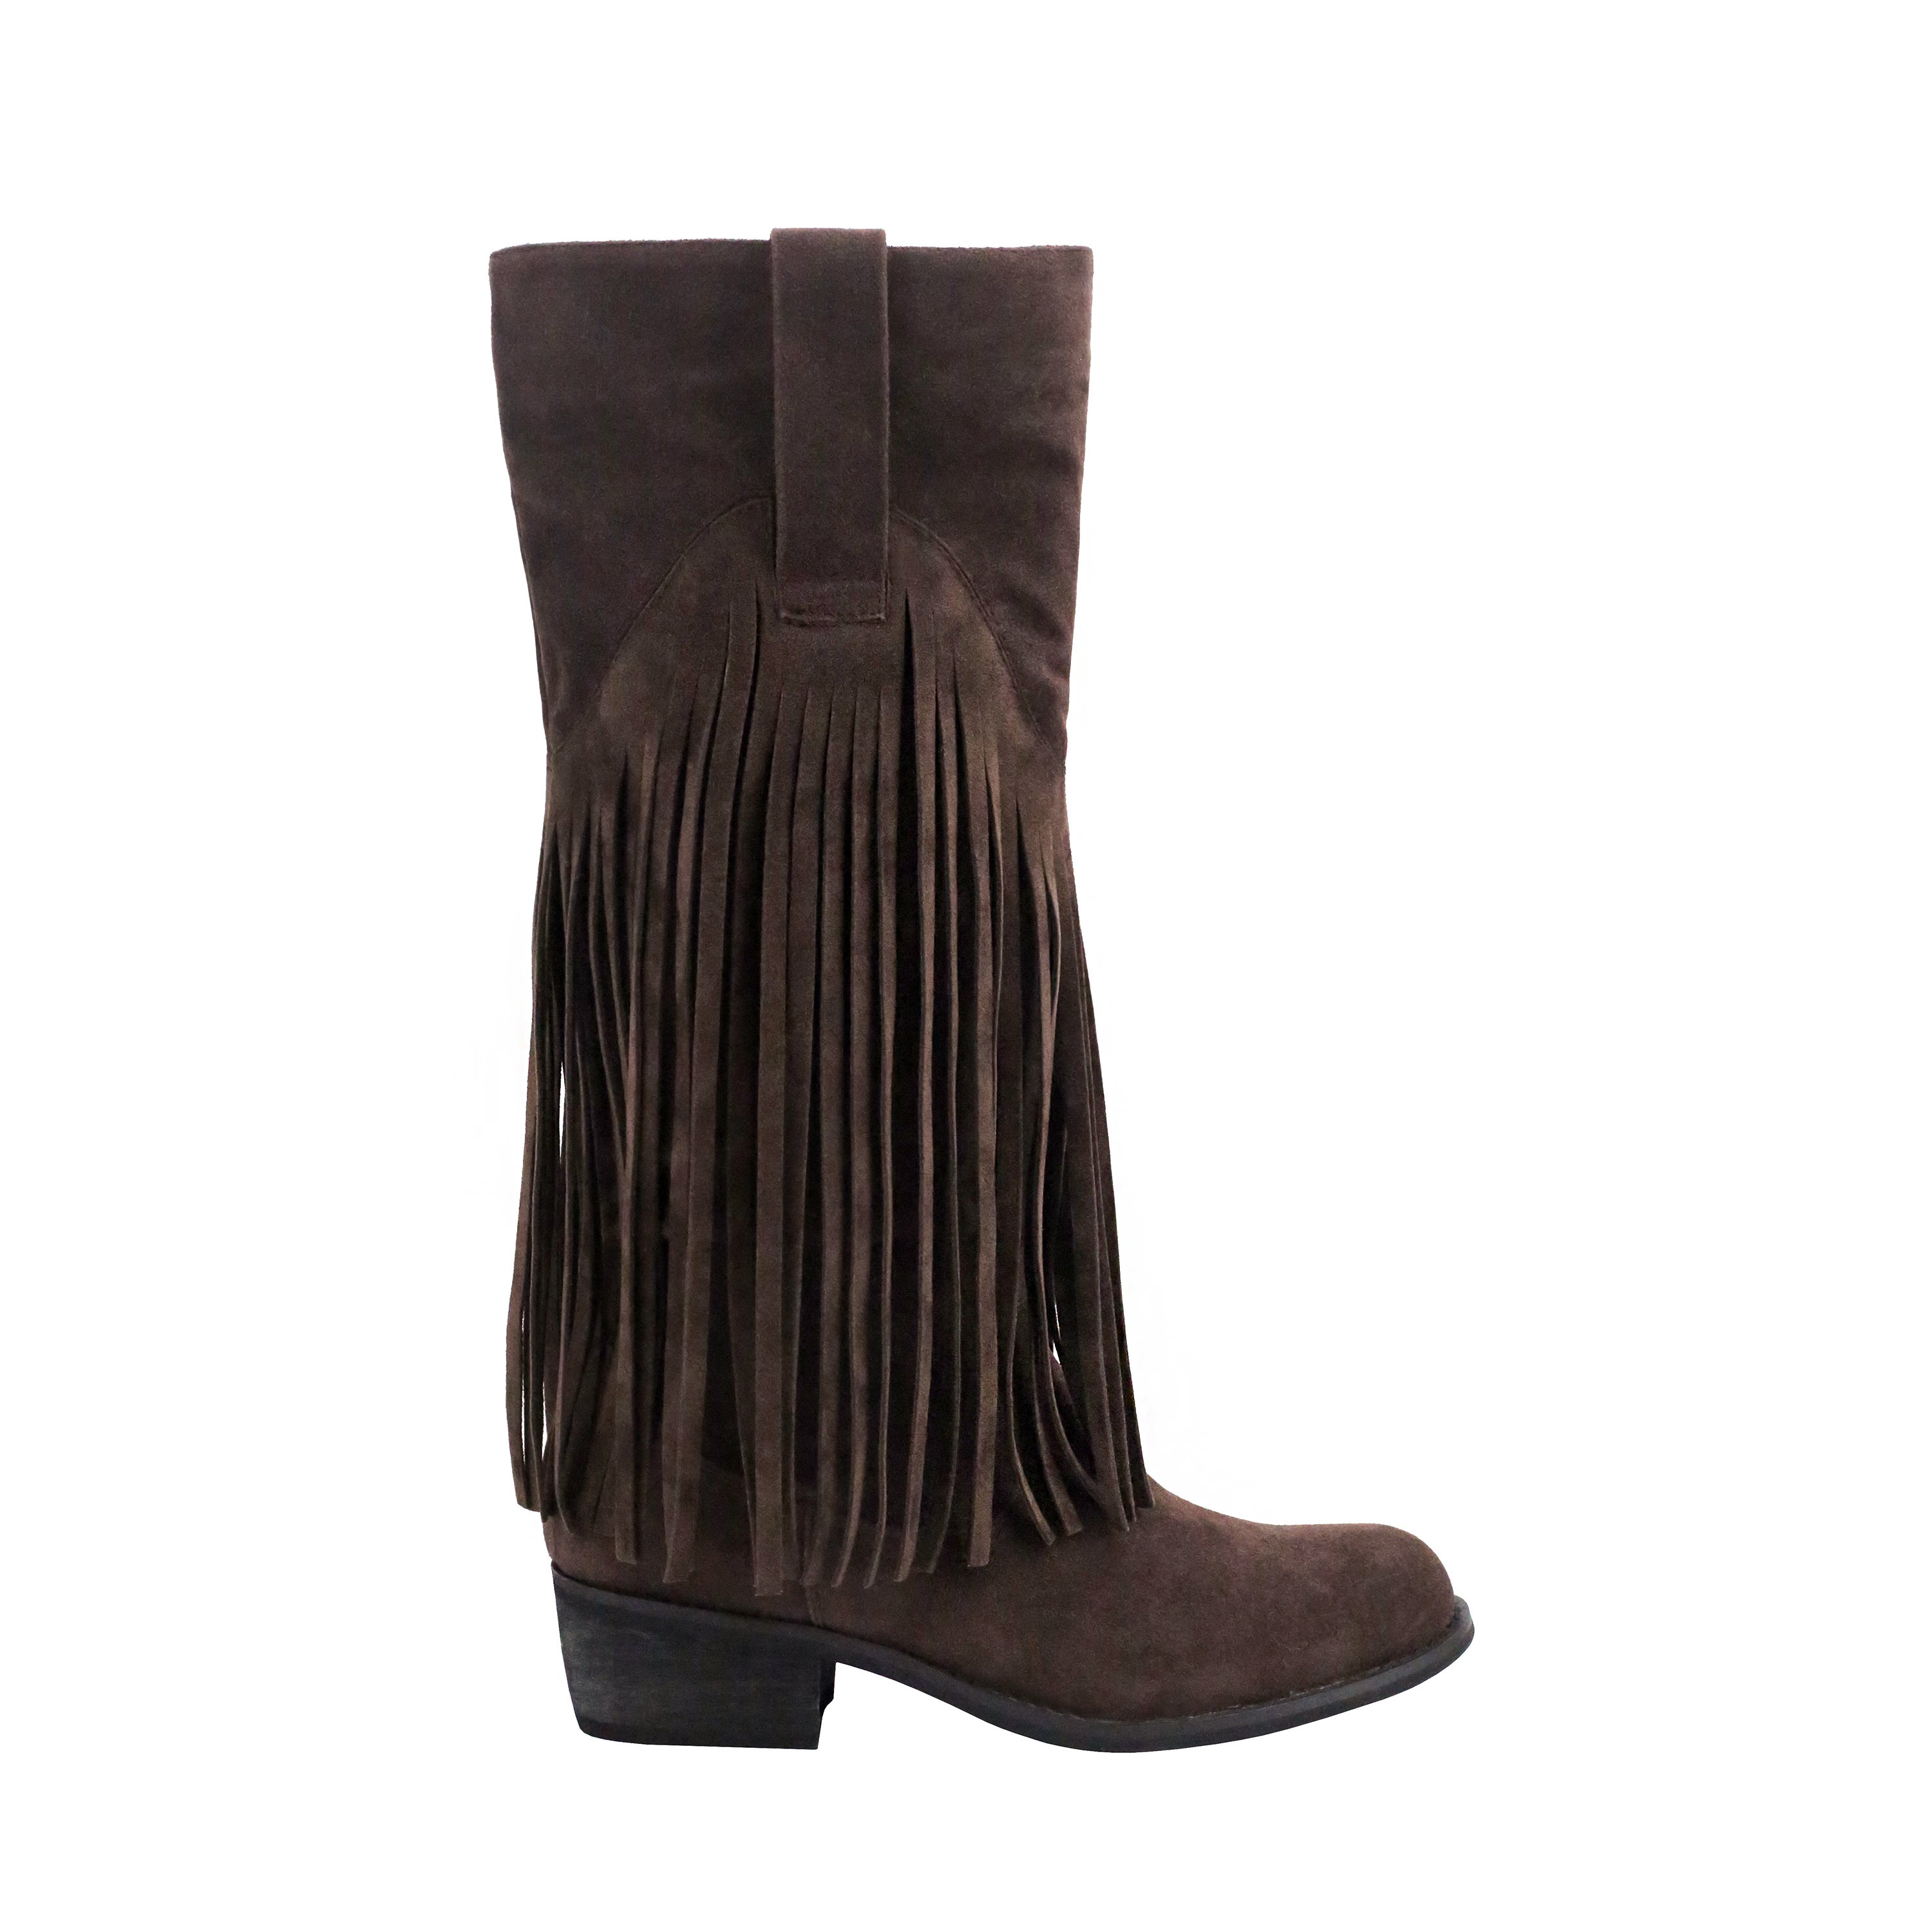 Olivia Miller Liberty Women's ... Fringe Riding Boots